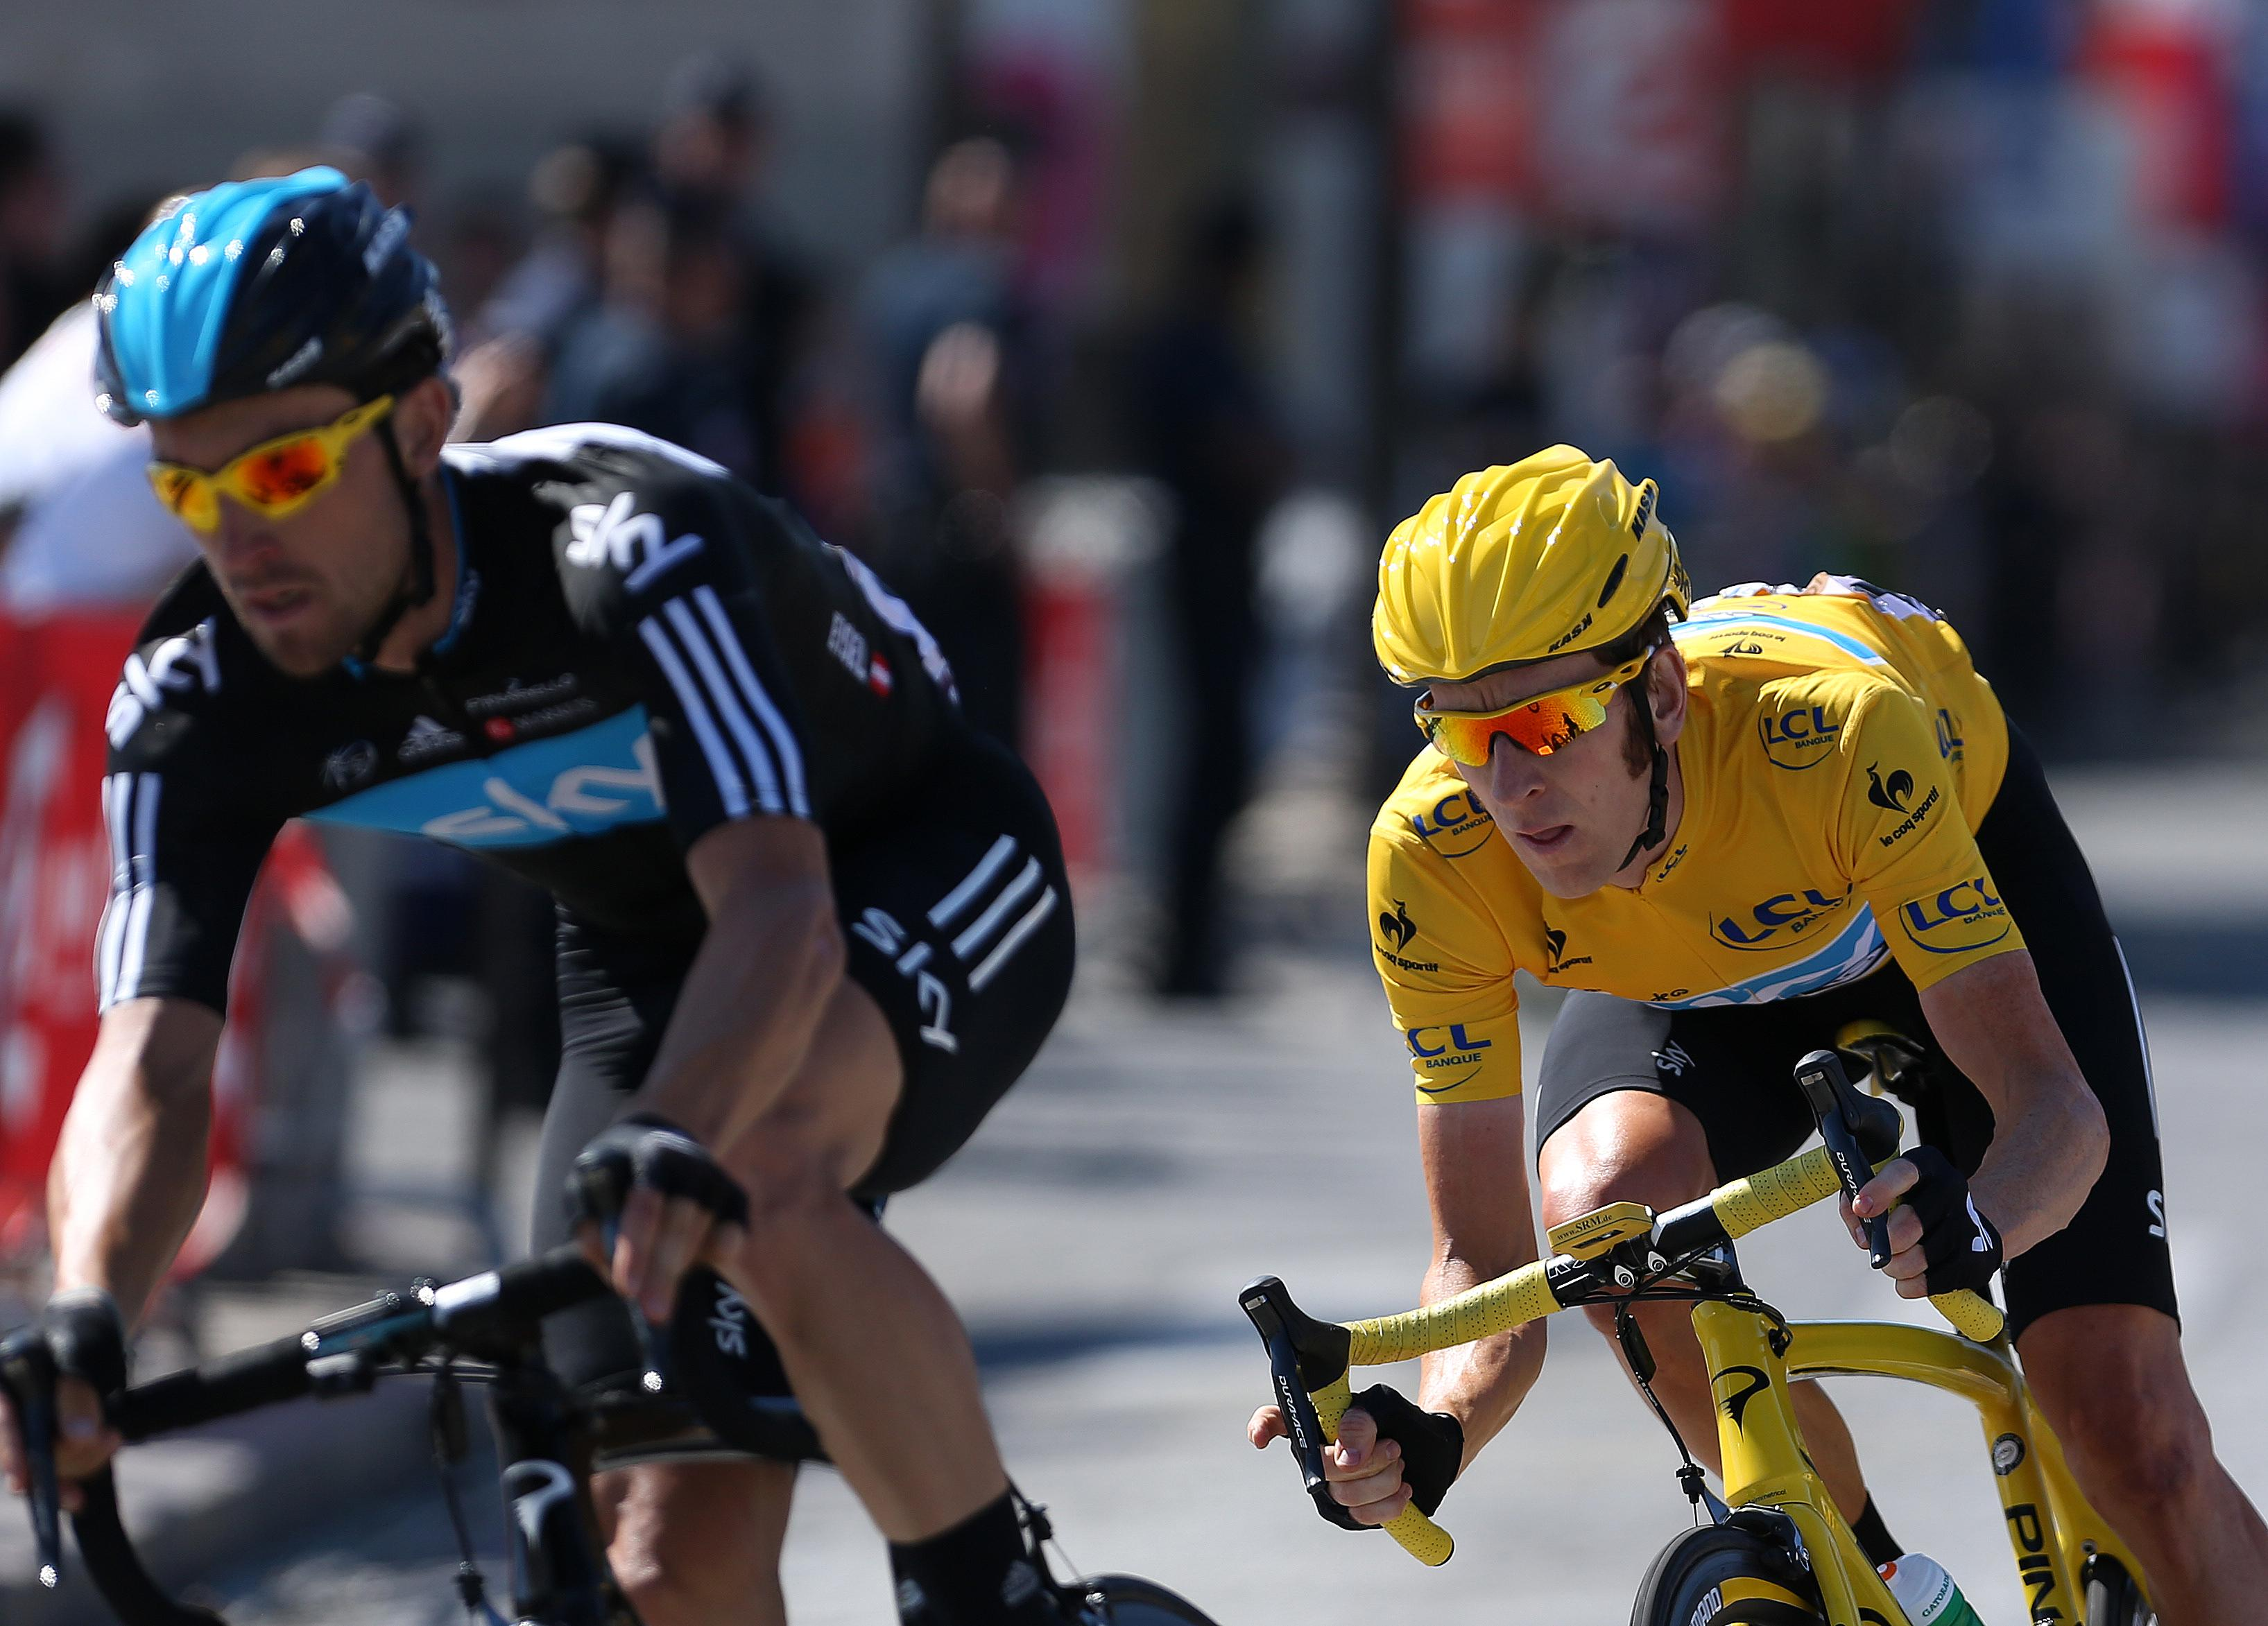 Sir Bradley Wiggins became the first British winner of the Tour de France in 2012